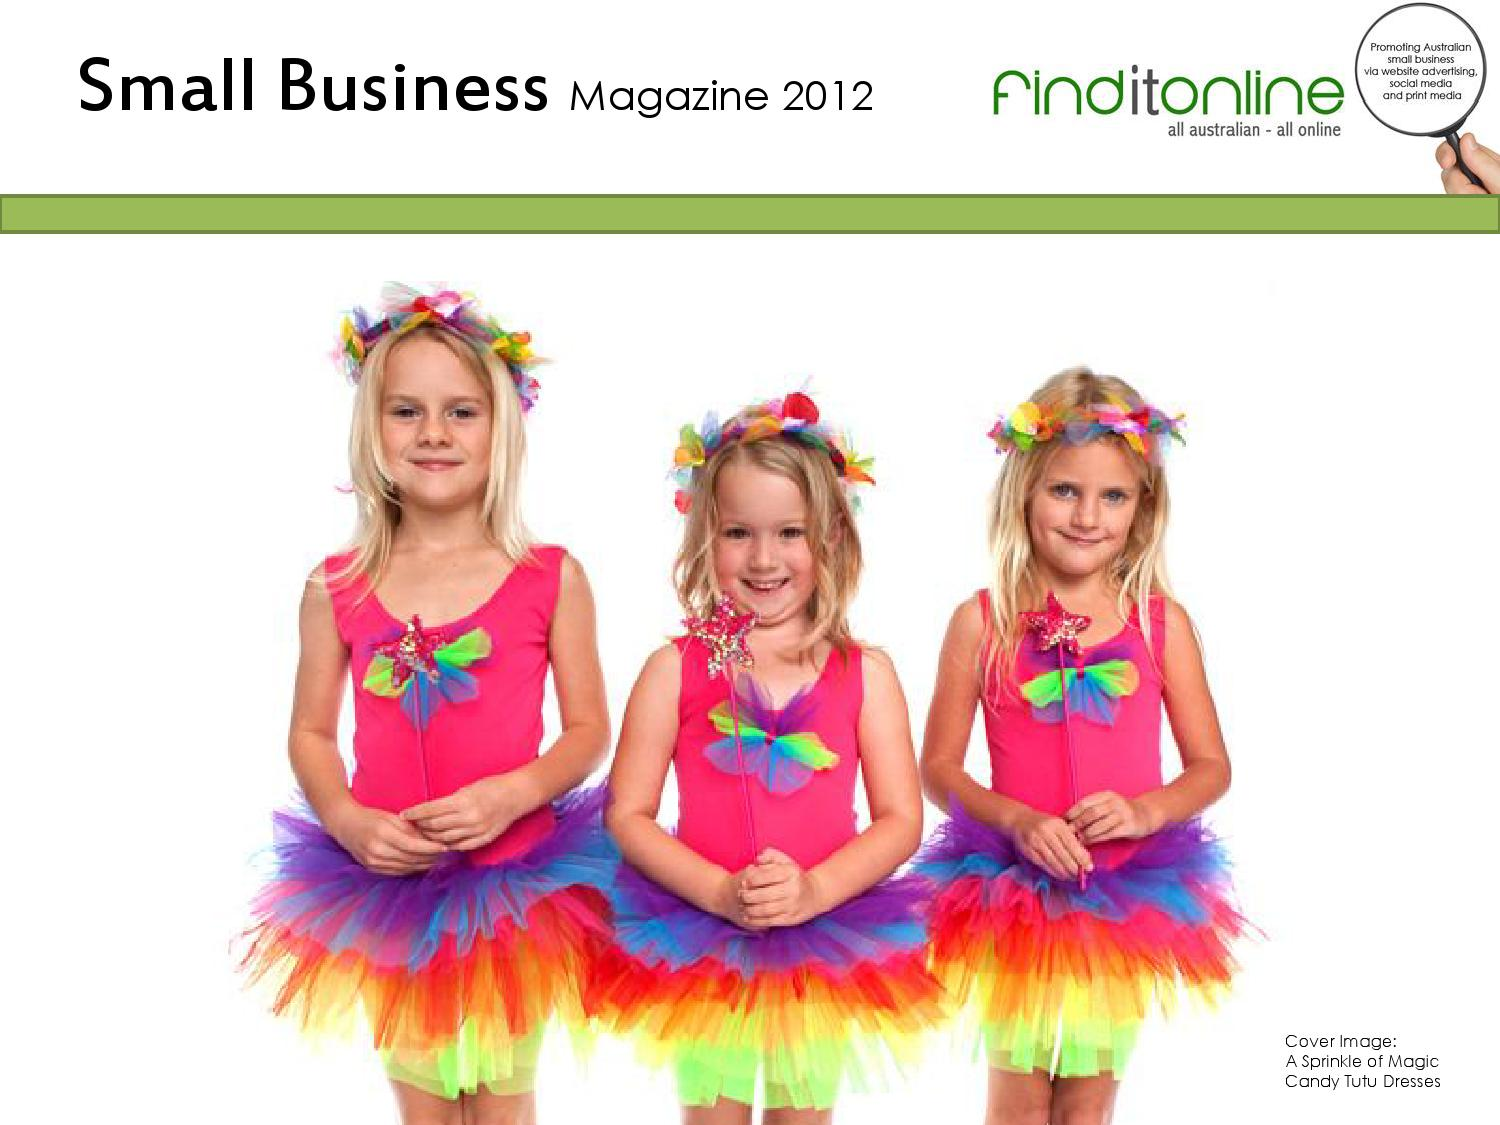 Small Business Magazine 2012 by Find It Online [Published]  issuu